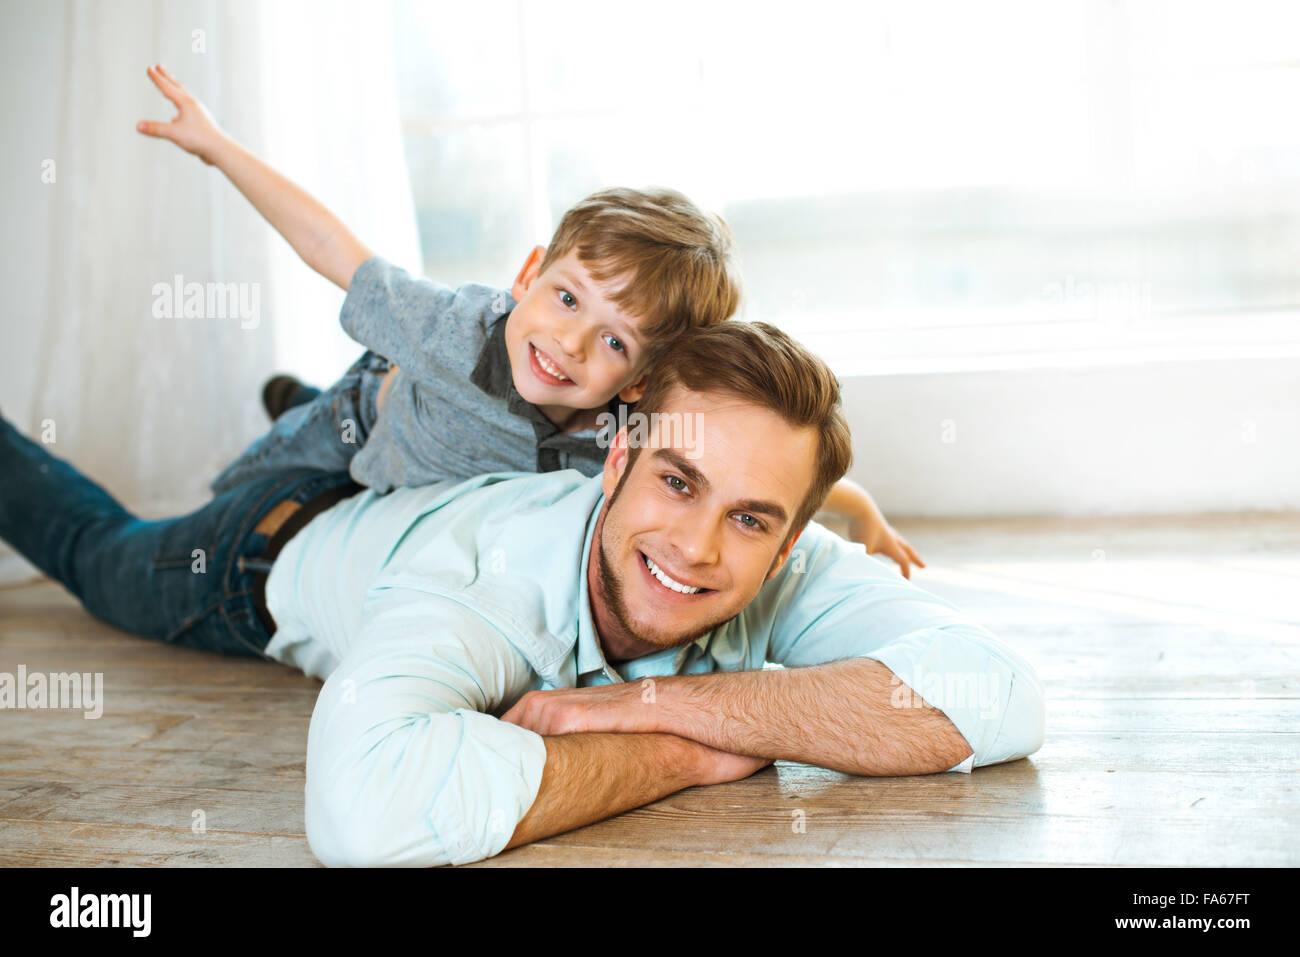 Little boy and his father on wooden floor - Stock Image